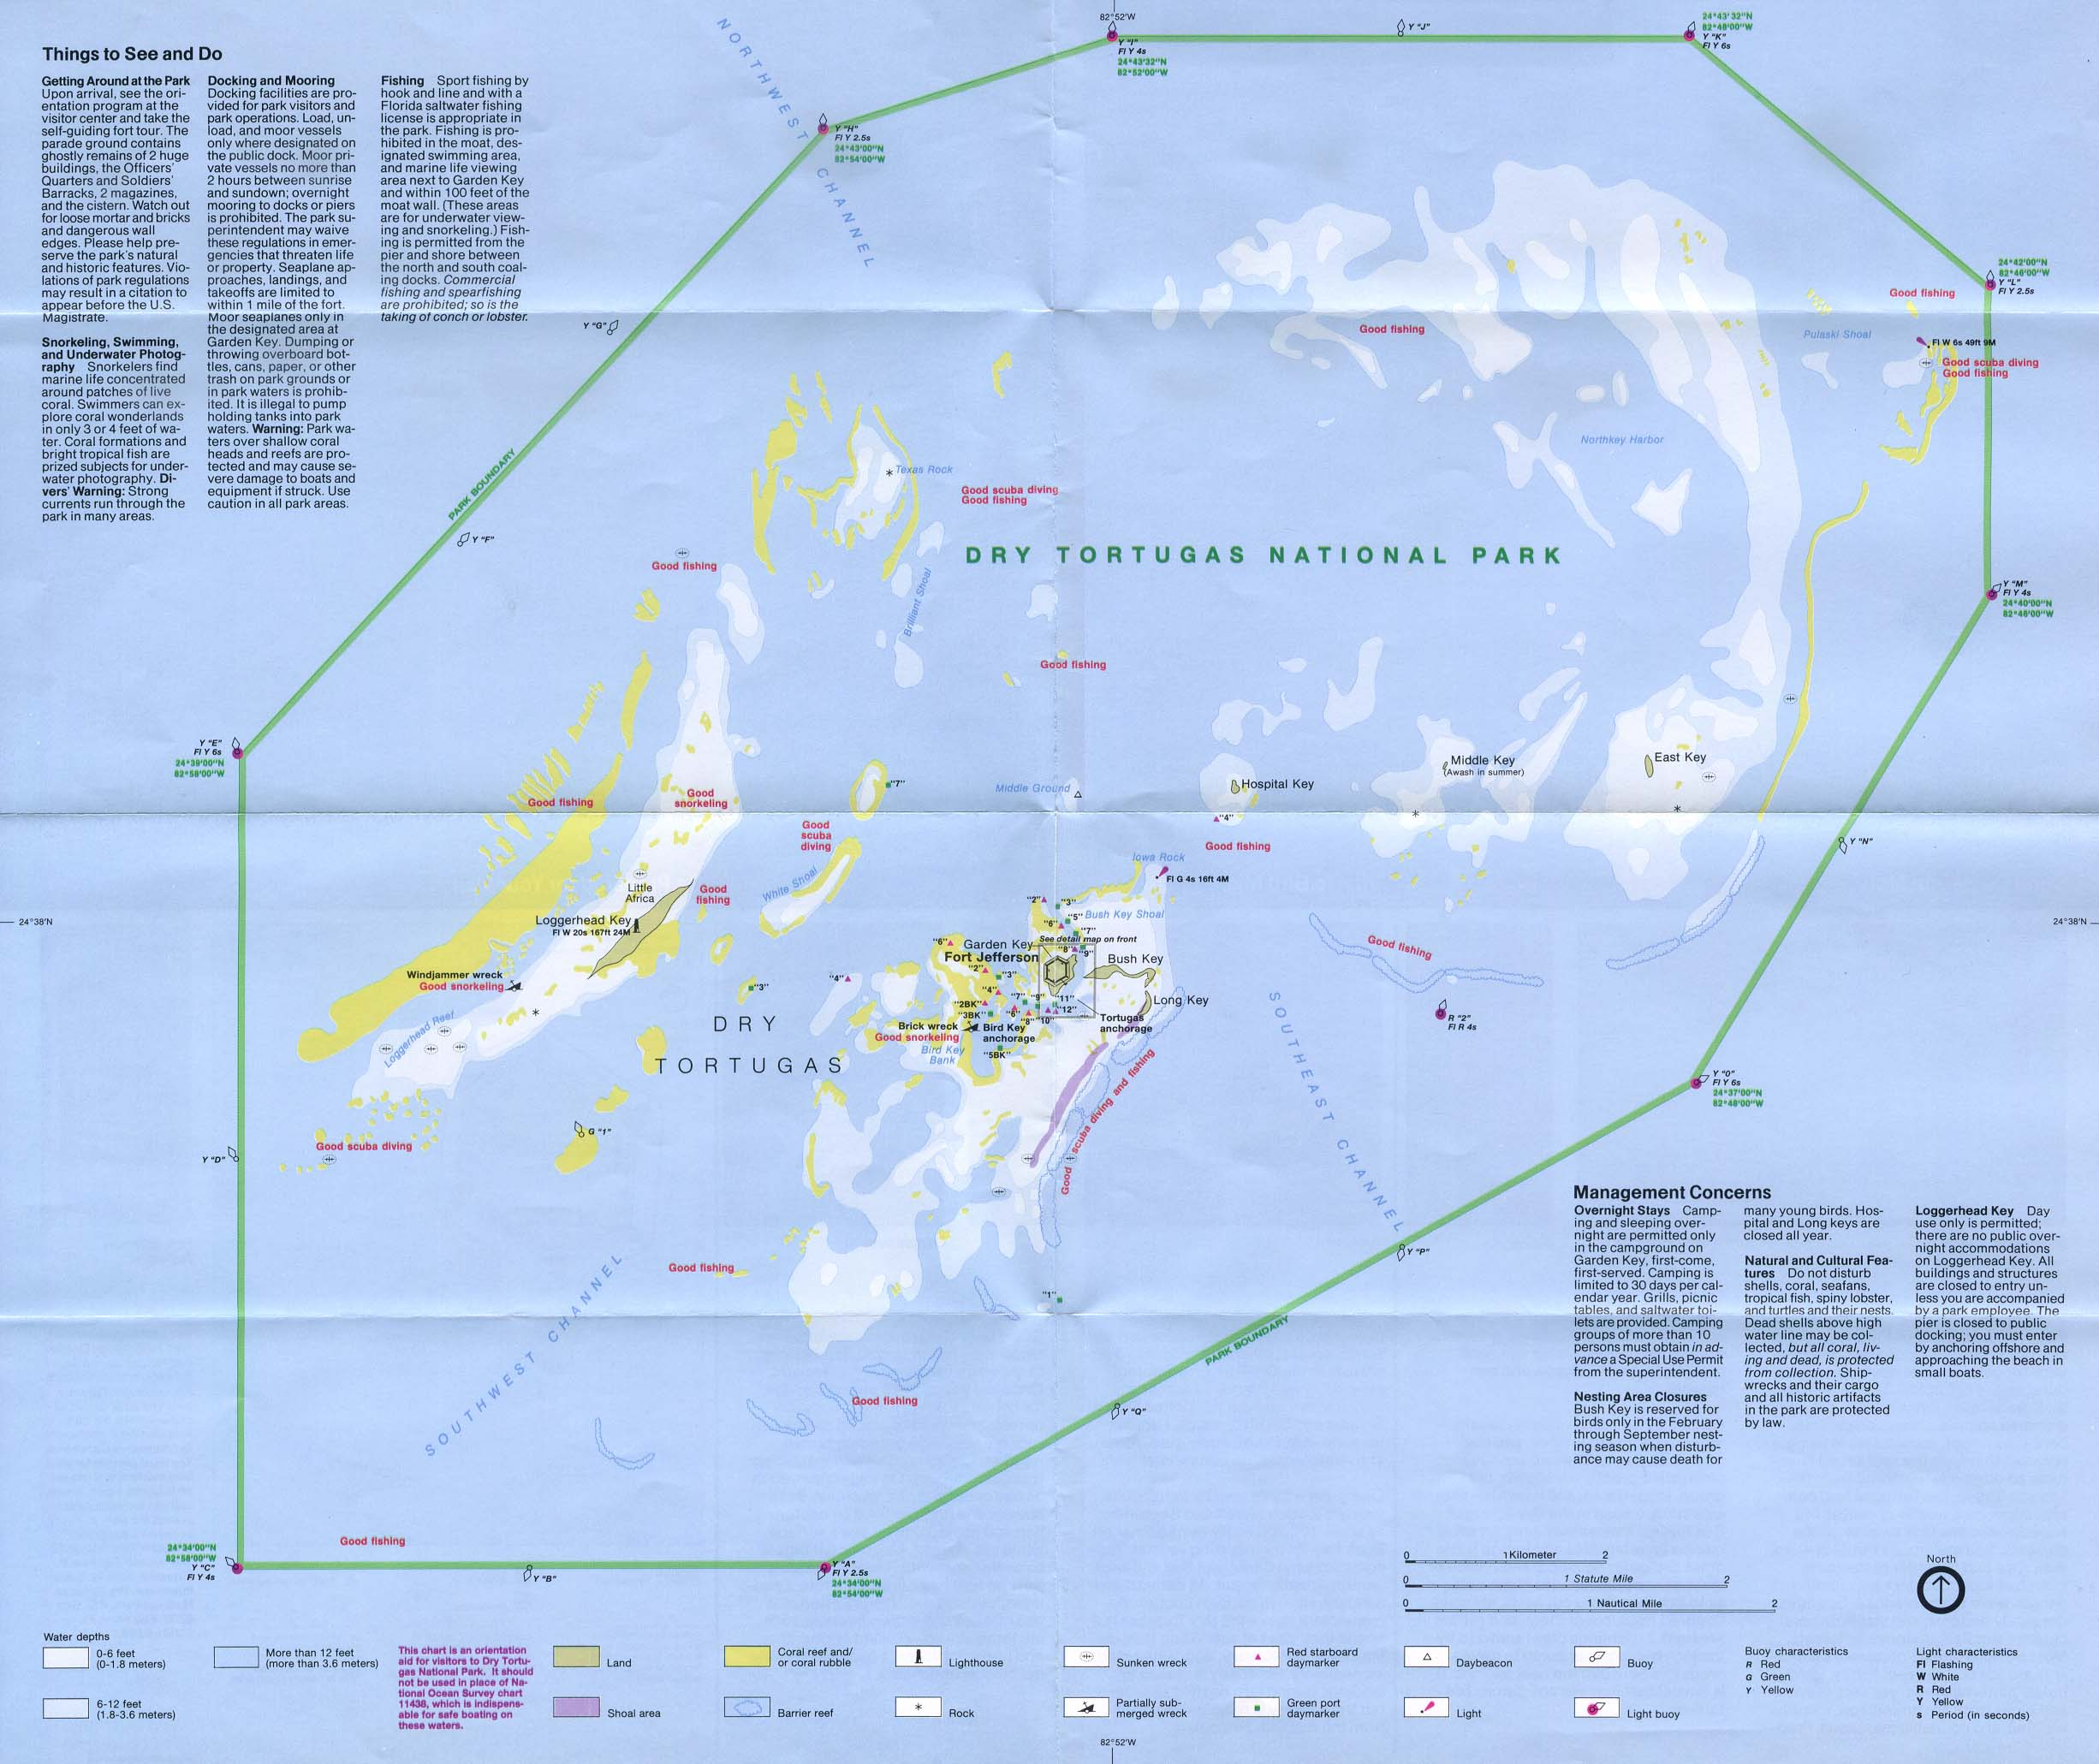 Dry Tortugas National Park Map, Florida, United States